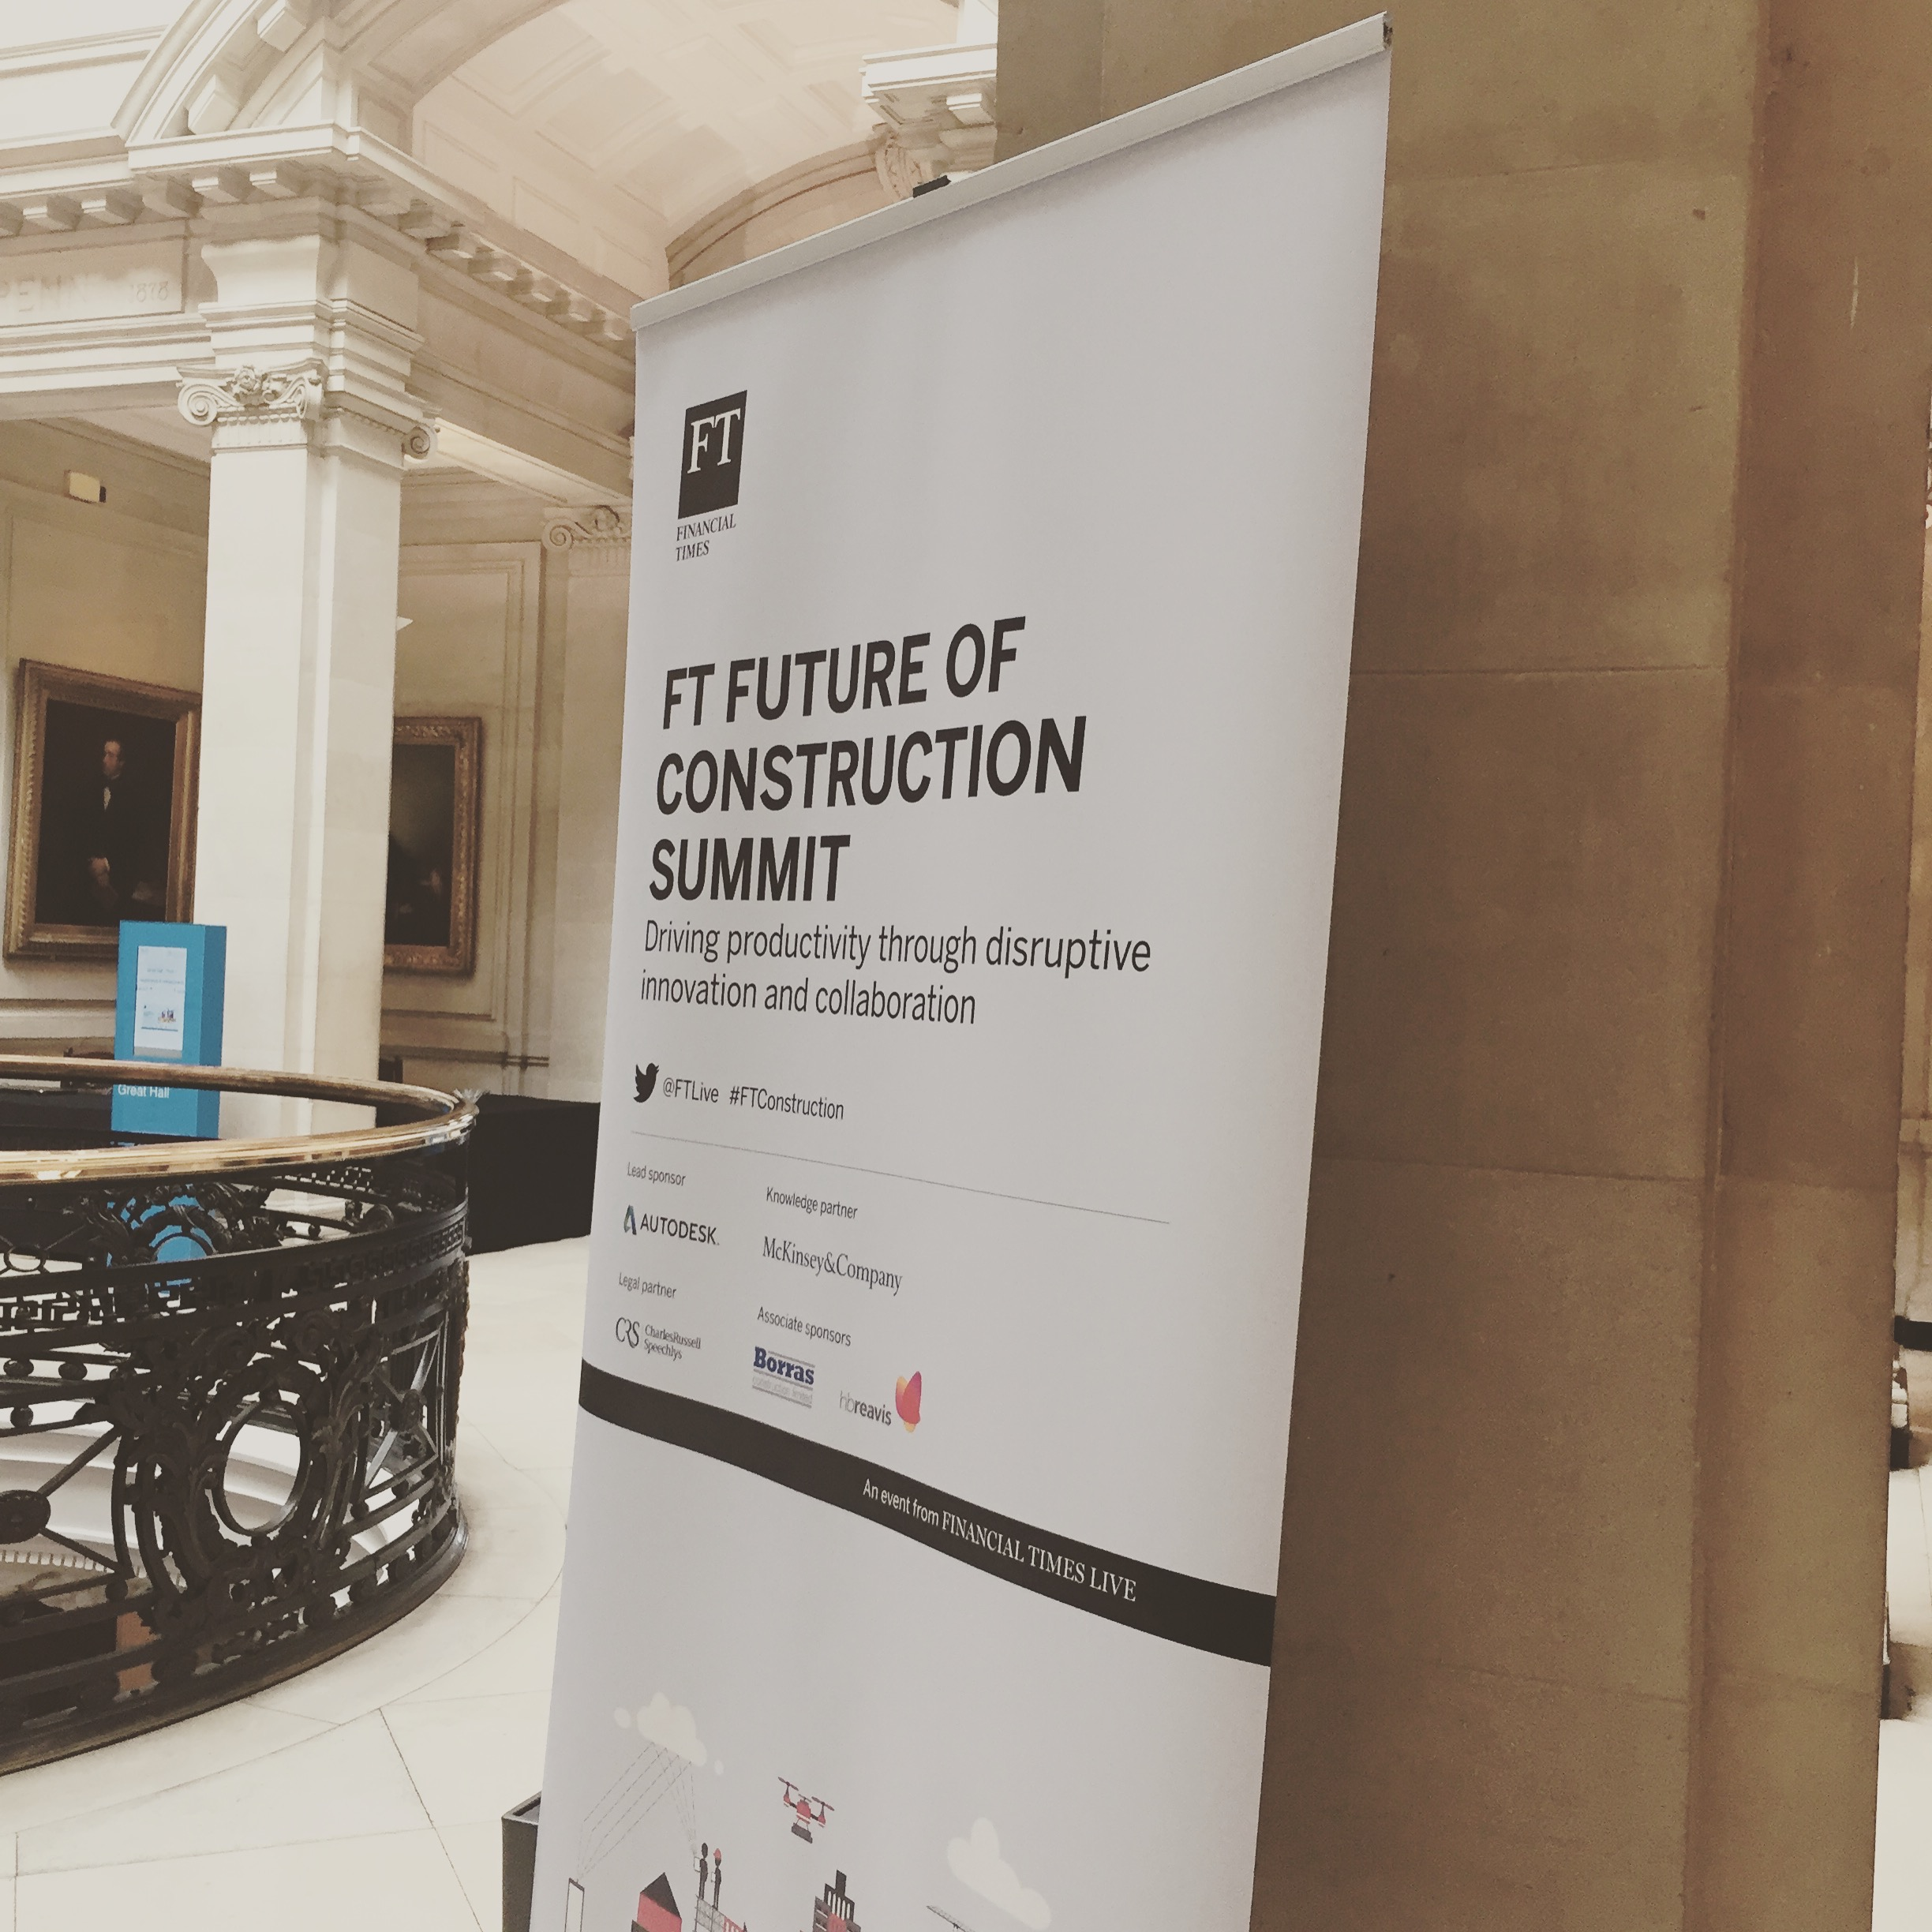 FT future of construction summit